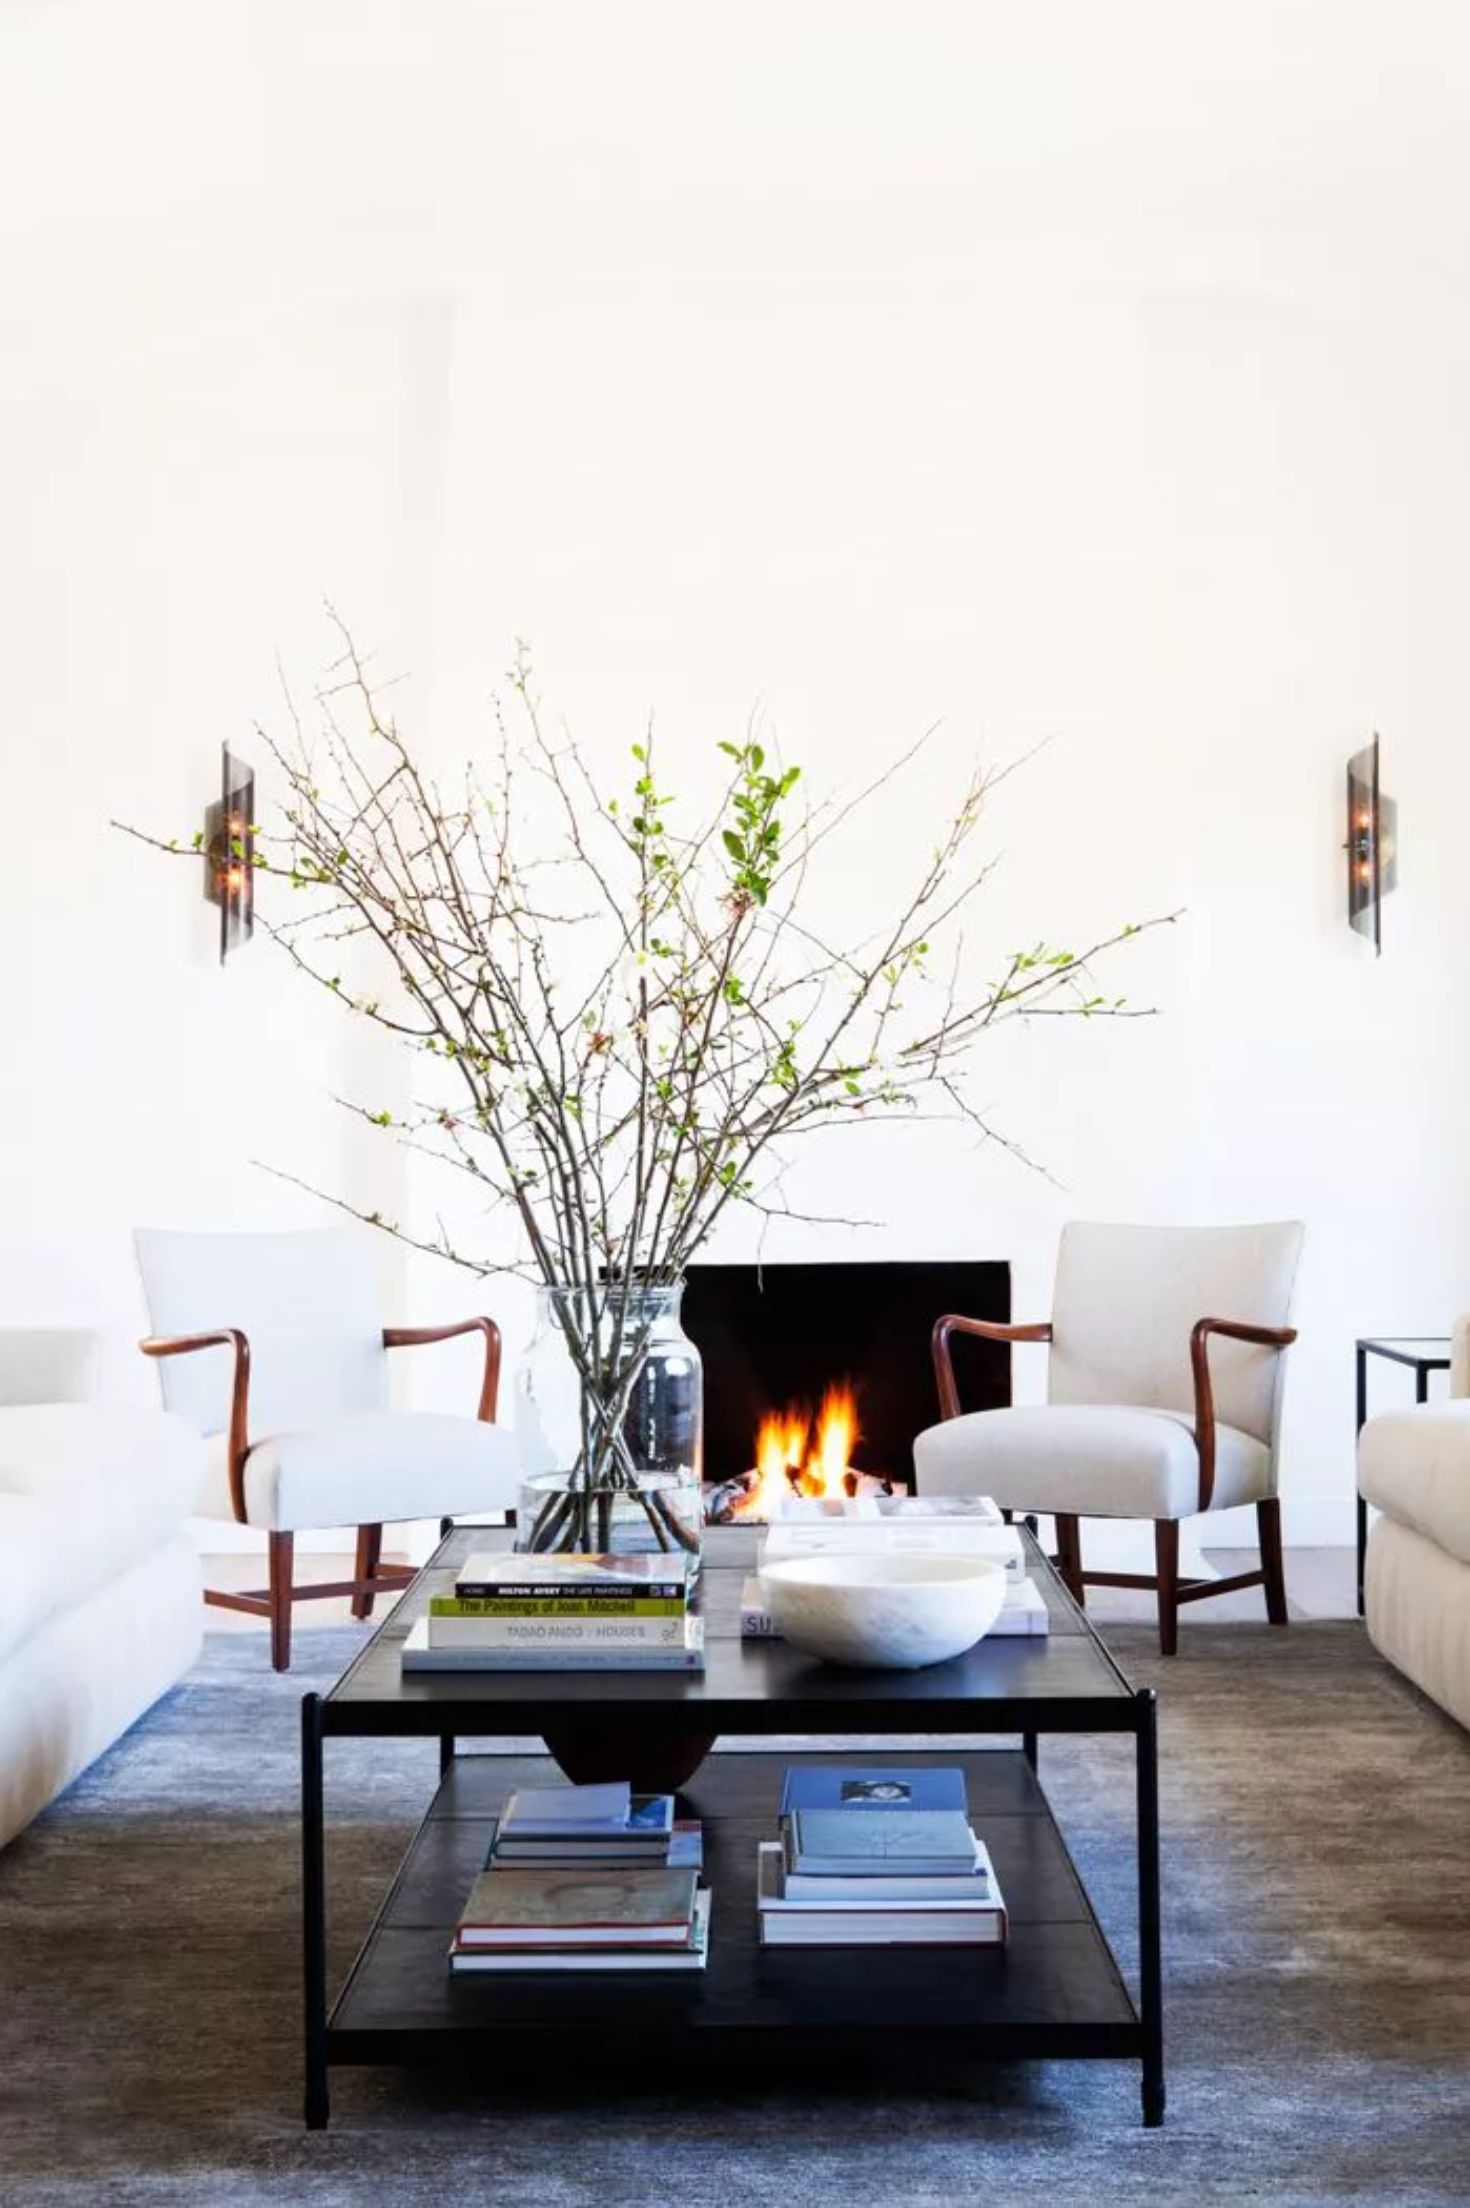 Best Warm White Paint Colors - Benjamin Moore - IMAGE: by D. Gilbert Photography, Design: DISC Interiors via MyDomaine feat. paint color 'White Dove' from Benjamin Moore